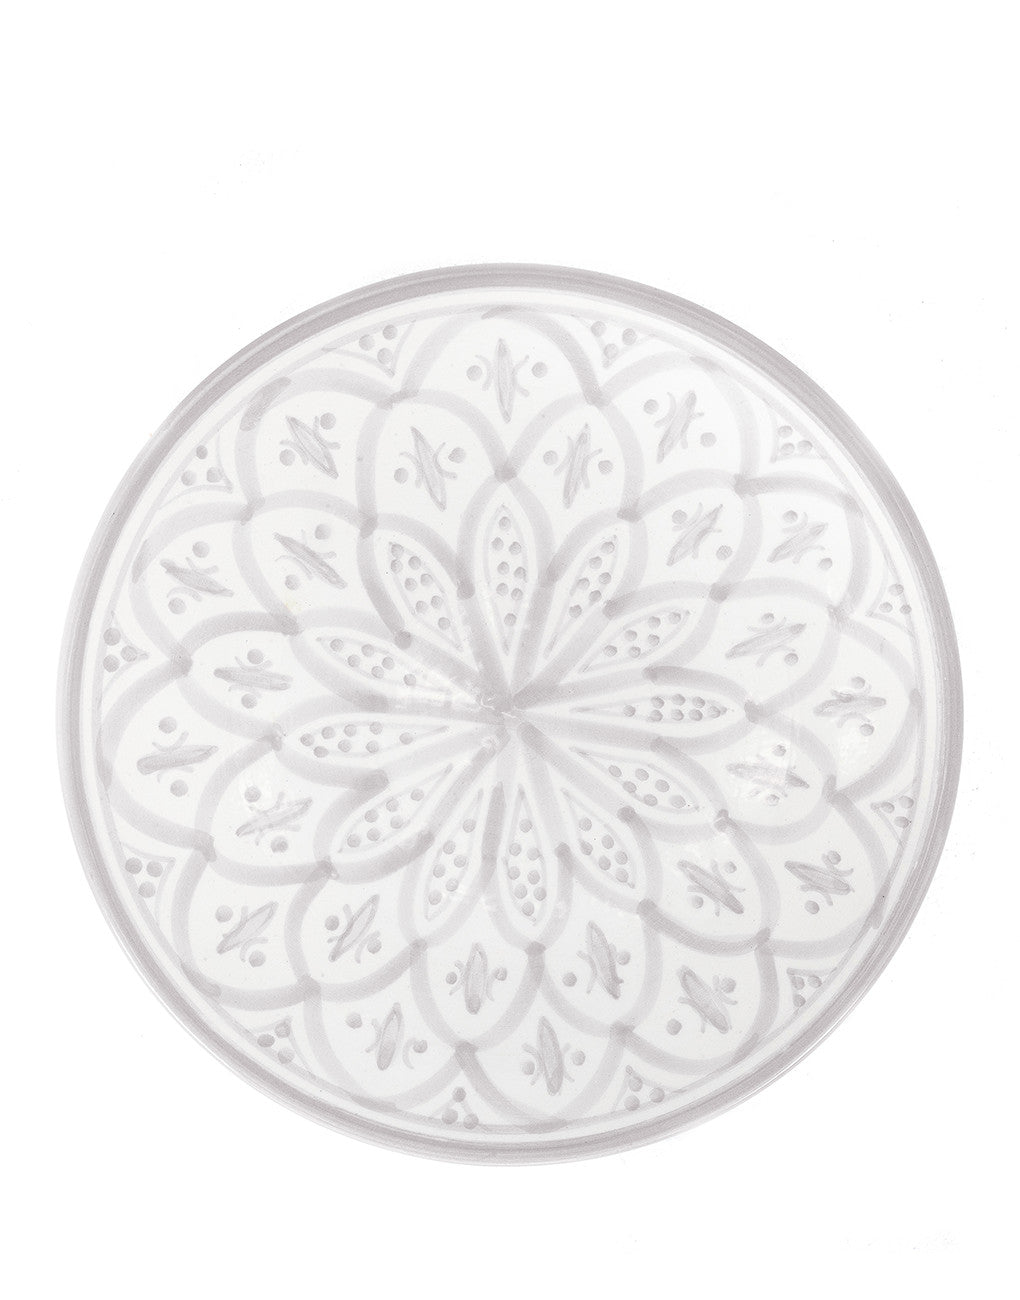 Fair Trade Handmade gray ceramic dinner plate